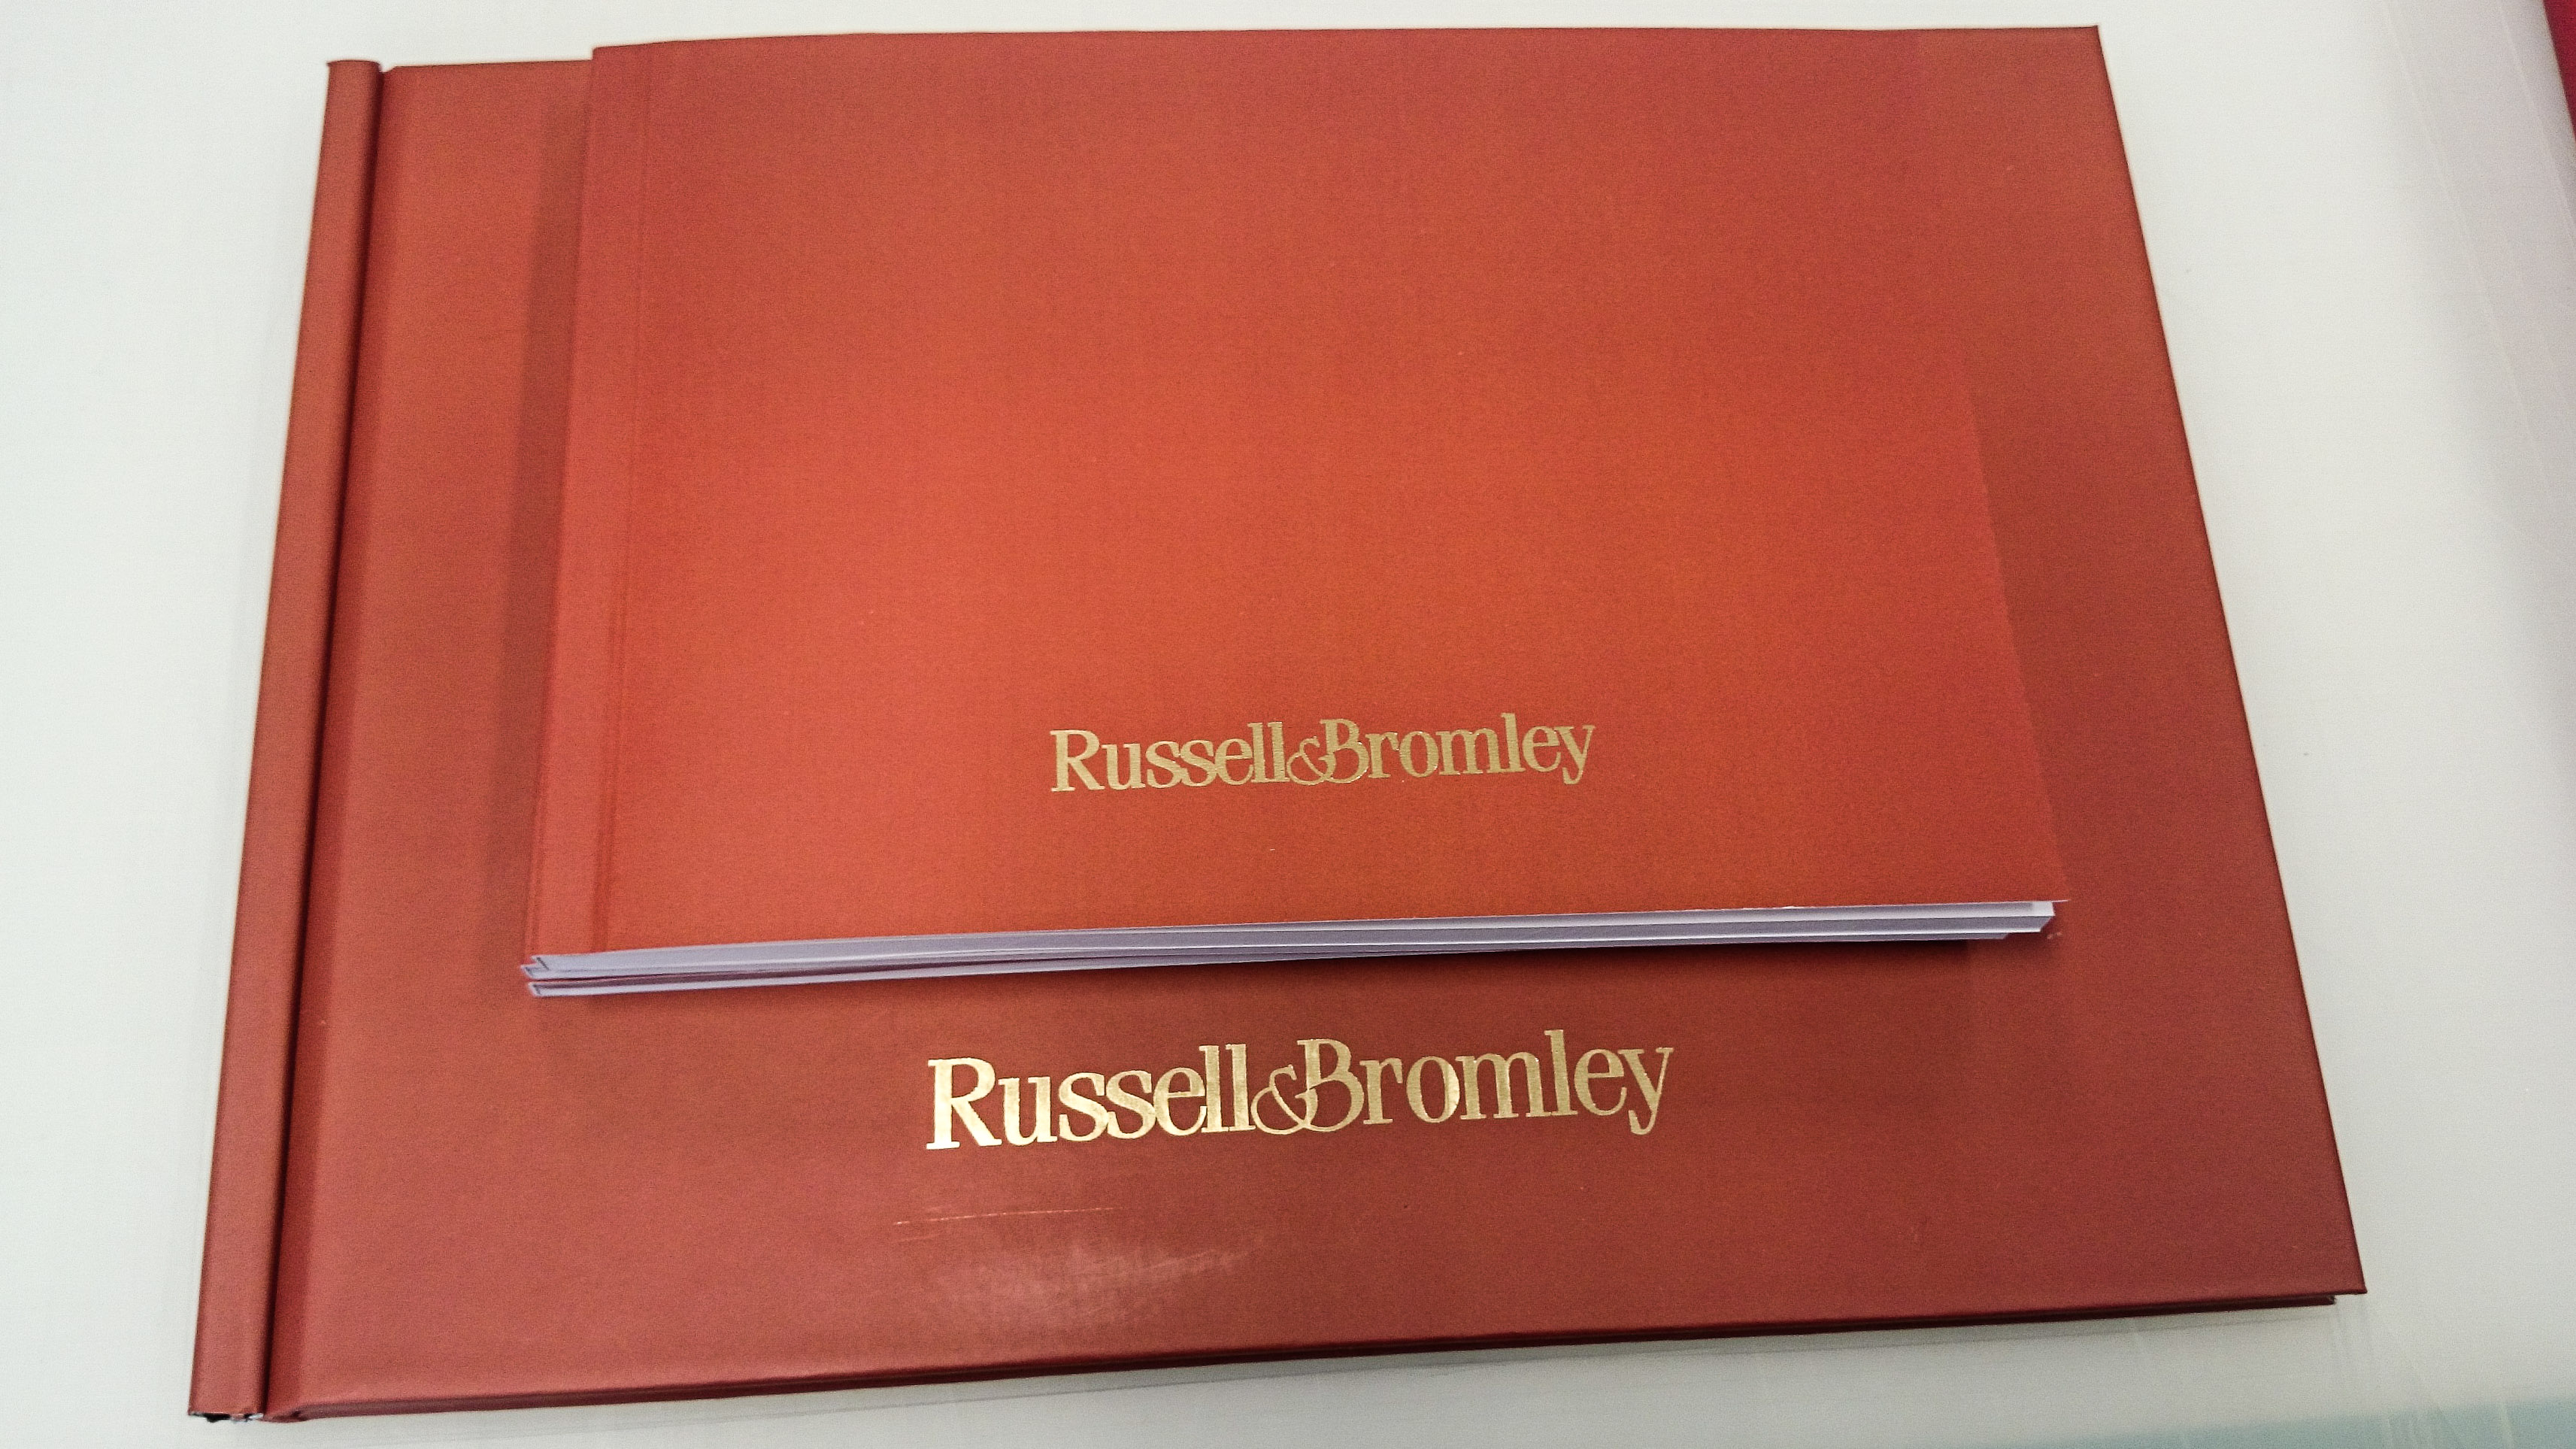 Gold foil on perfect bound books